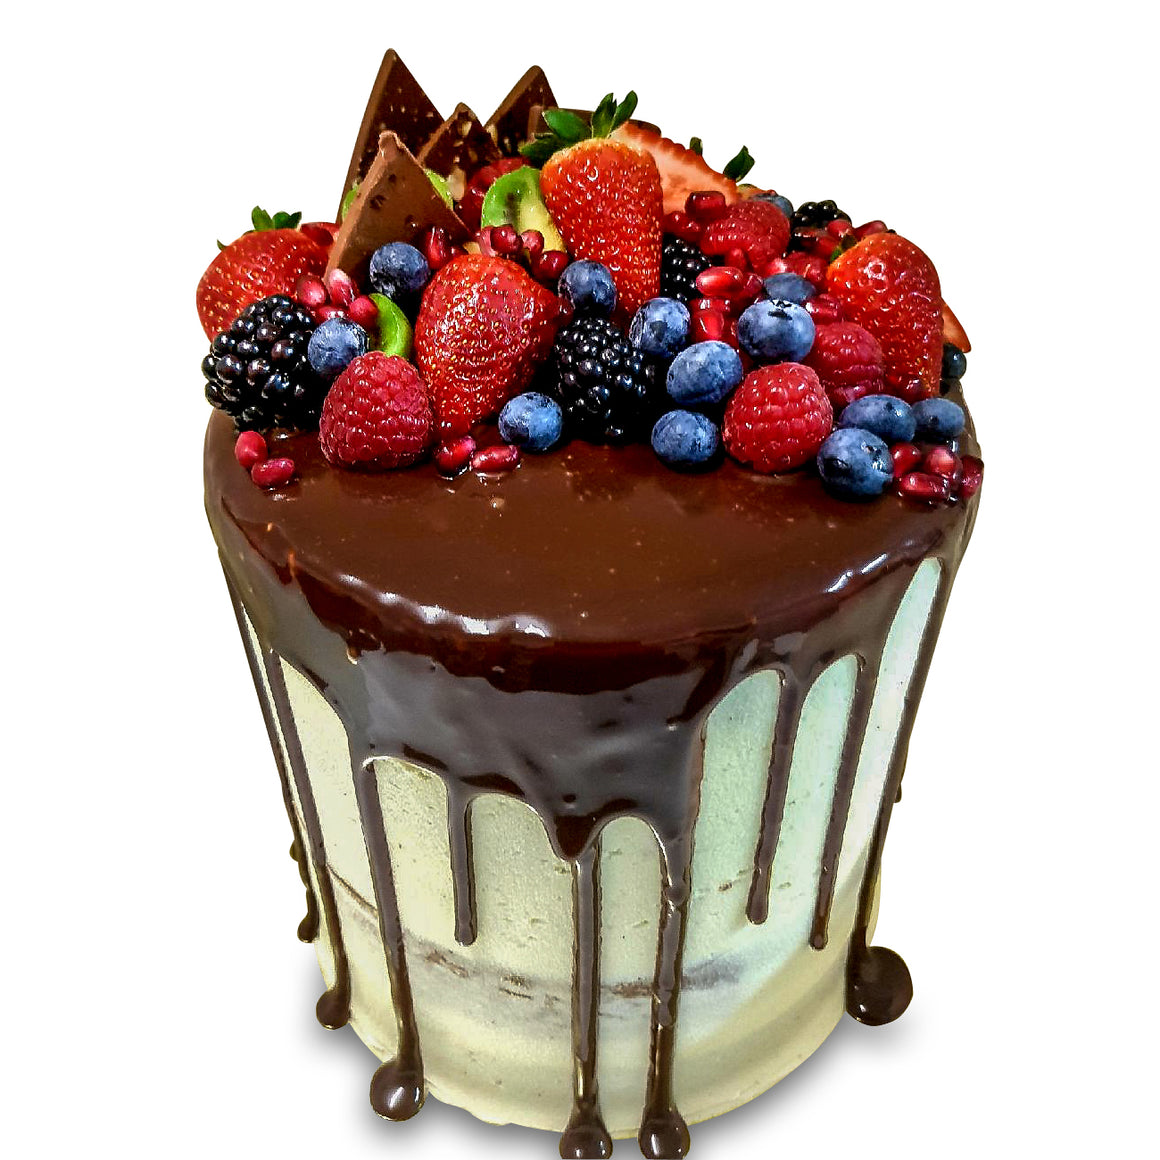 Fruity Celebration Drip Cake - Dello Mano - 1